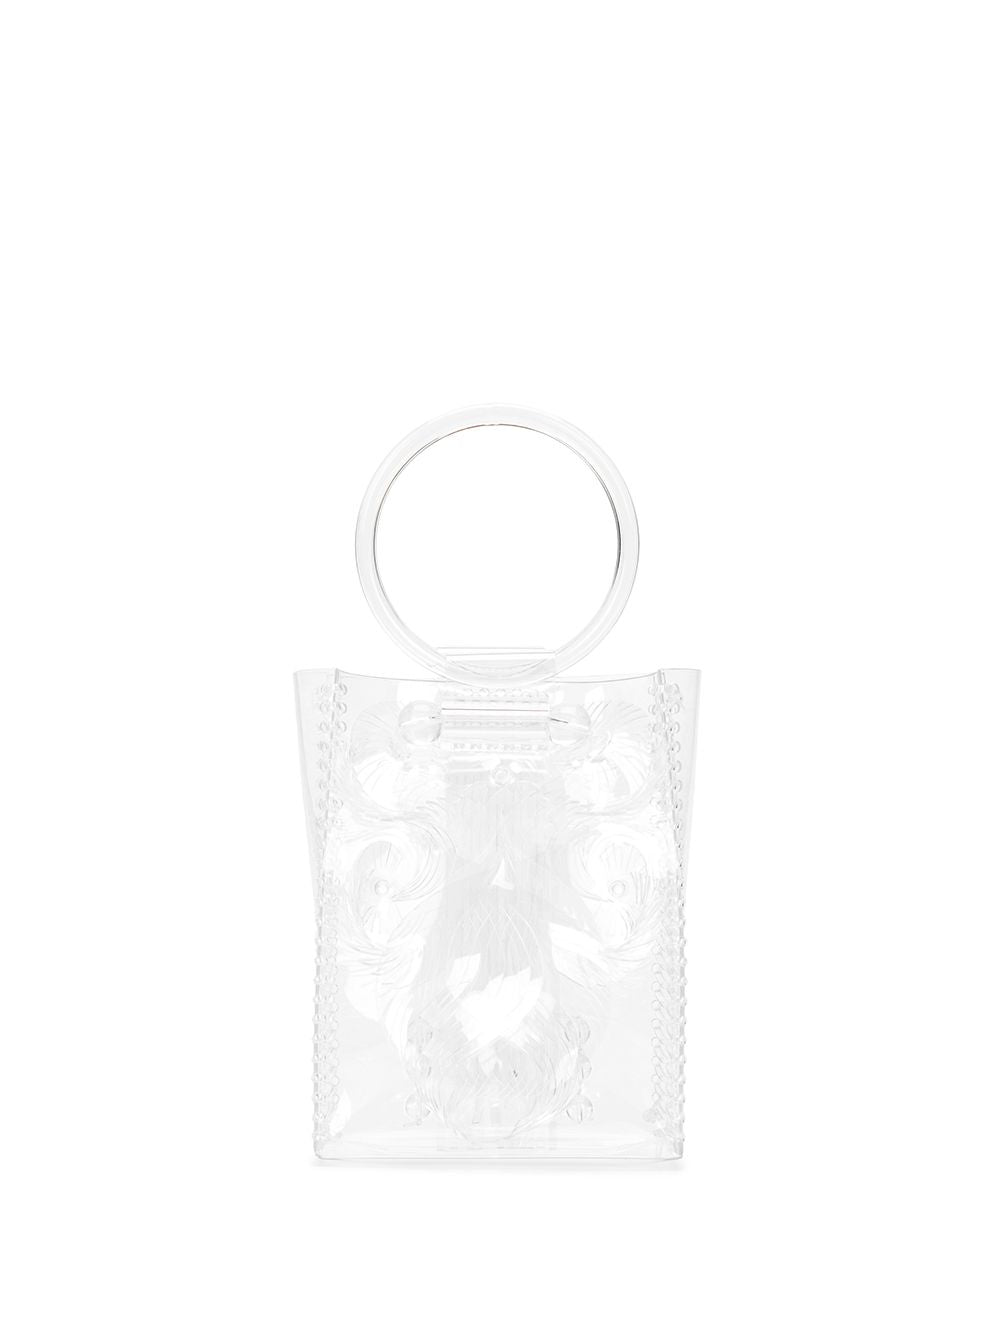 MAME KUROGOUCHI WOMEN MINI VINYL TOP HANDLE TOTE BAG